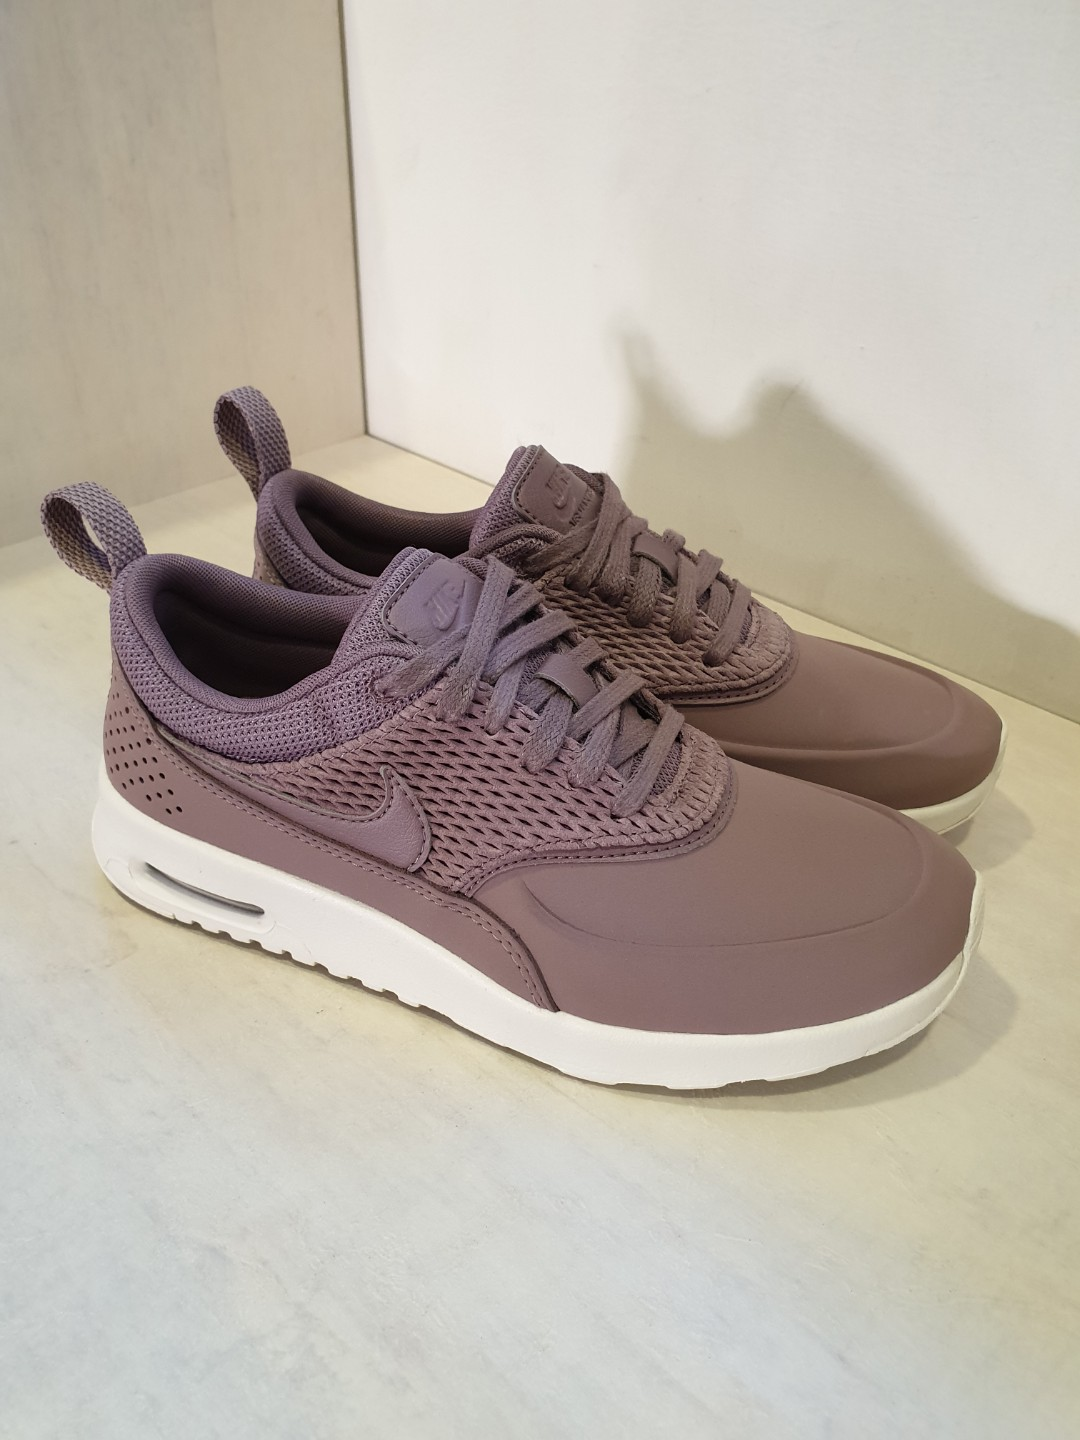 042f7c692e Nike Air Max Thea Premium, Women's Fashion, Shoes, Sneakers on Carousell